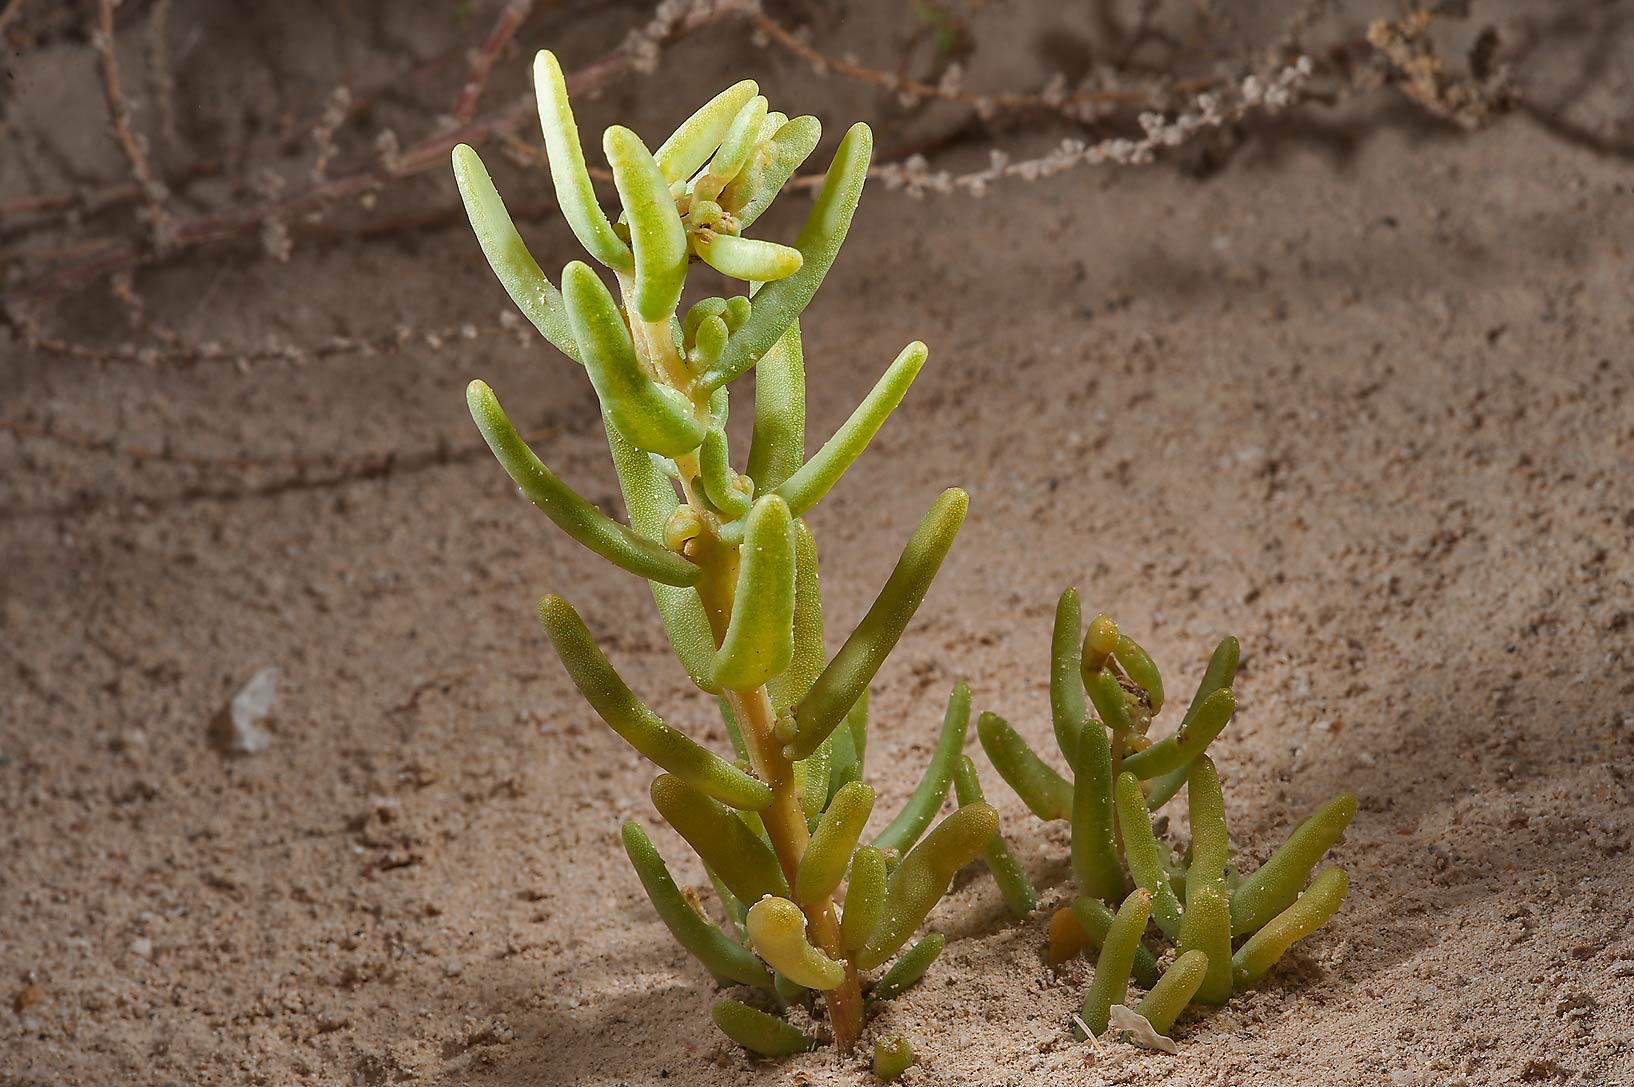 Plant of Bienertia cycloptera emerging from sand...near Saudi border. Southern Qatar